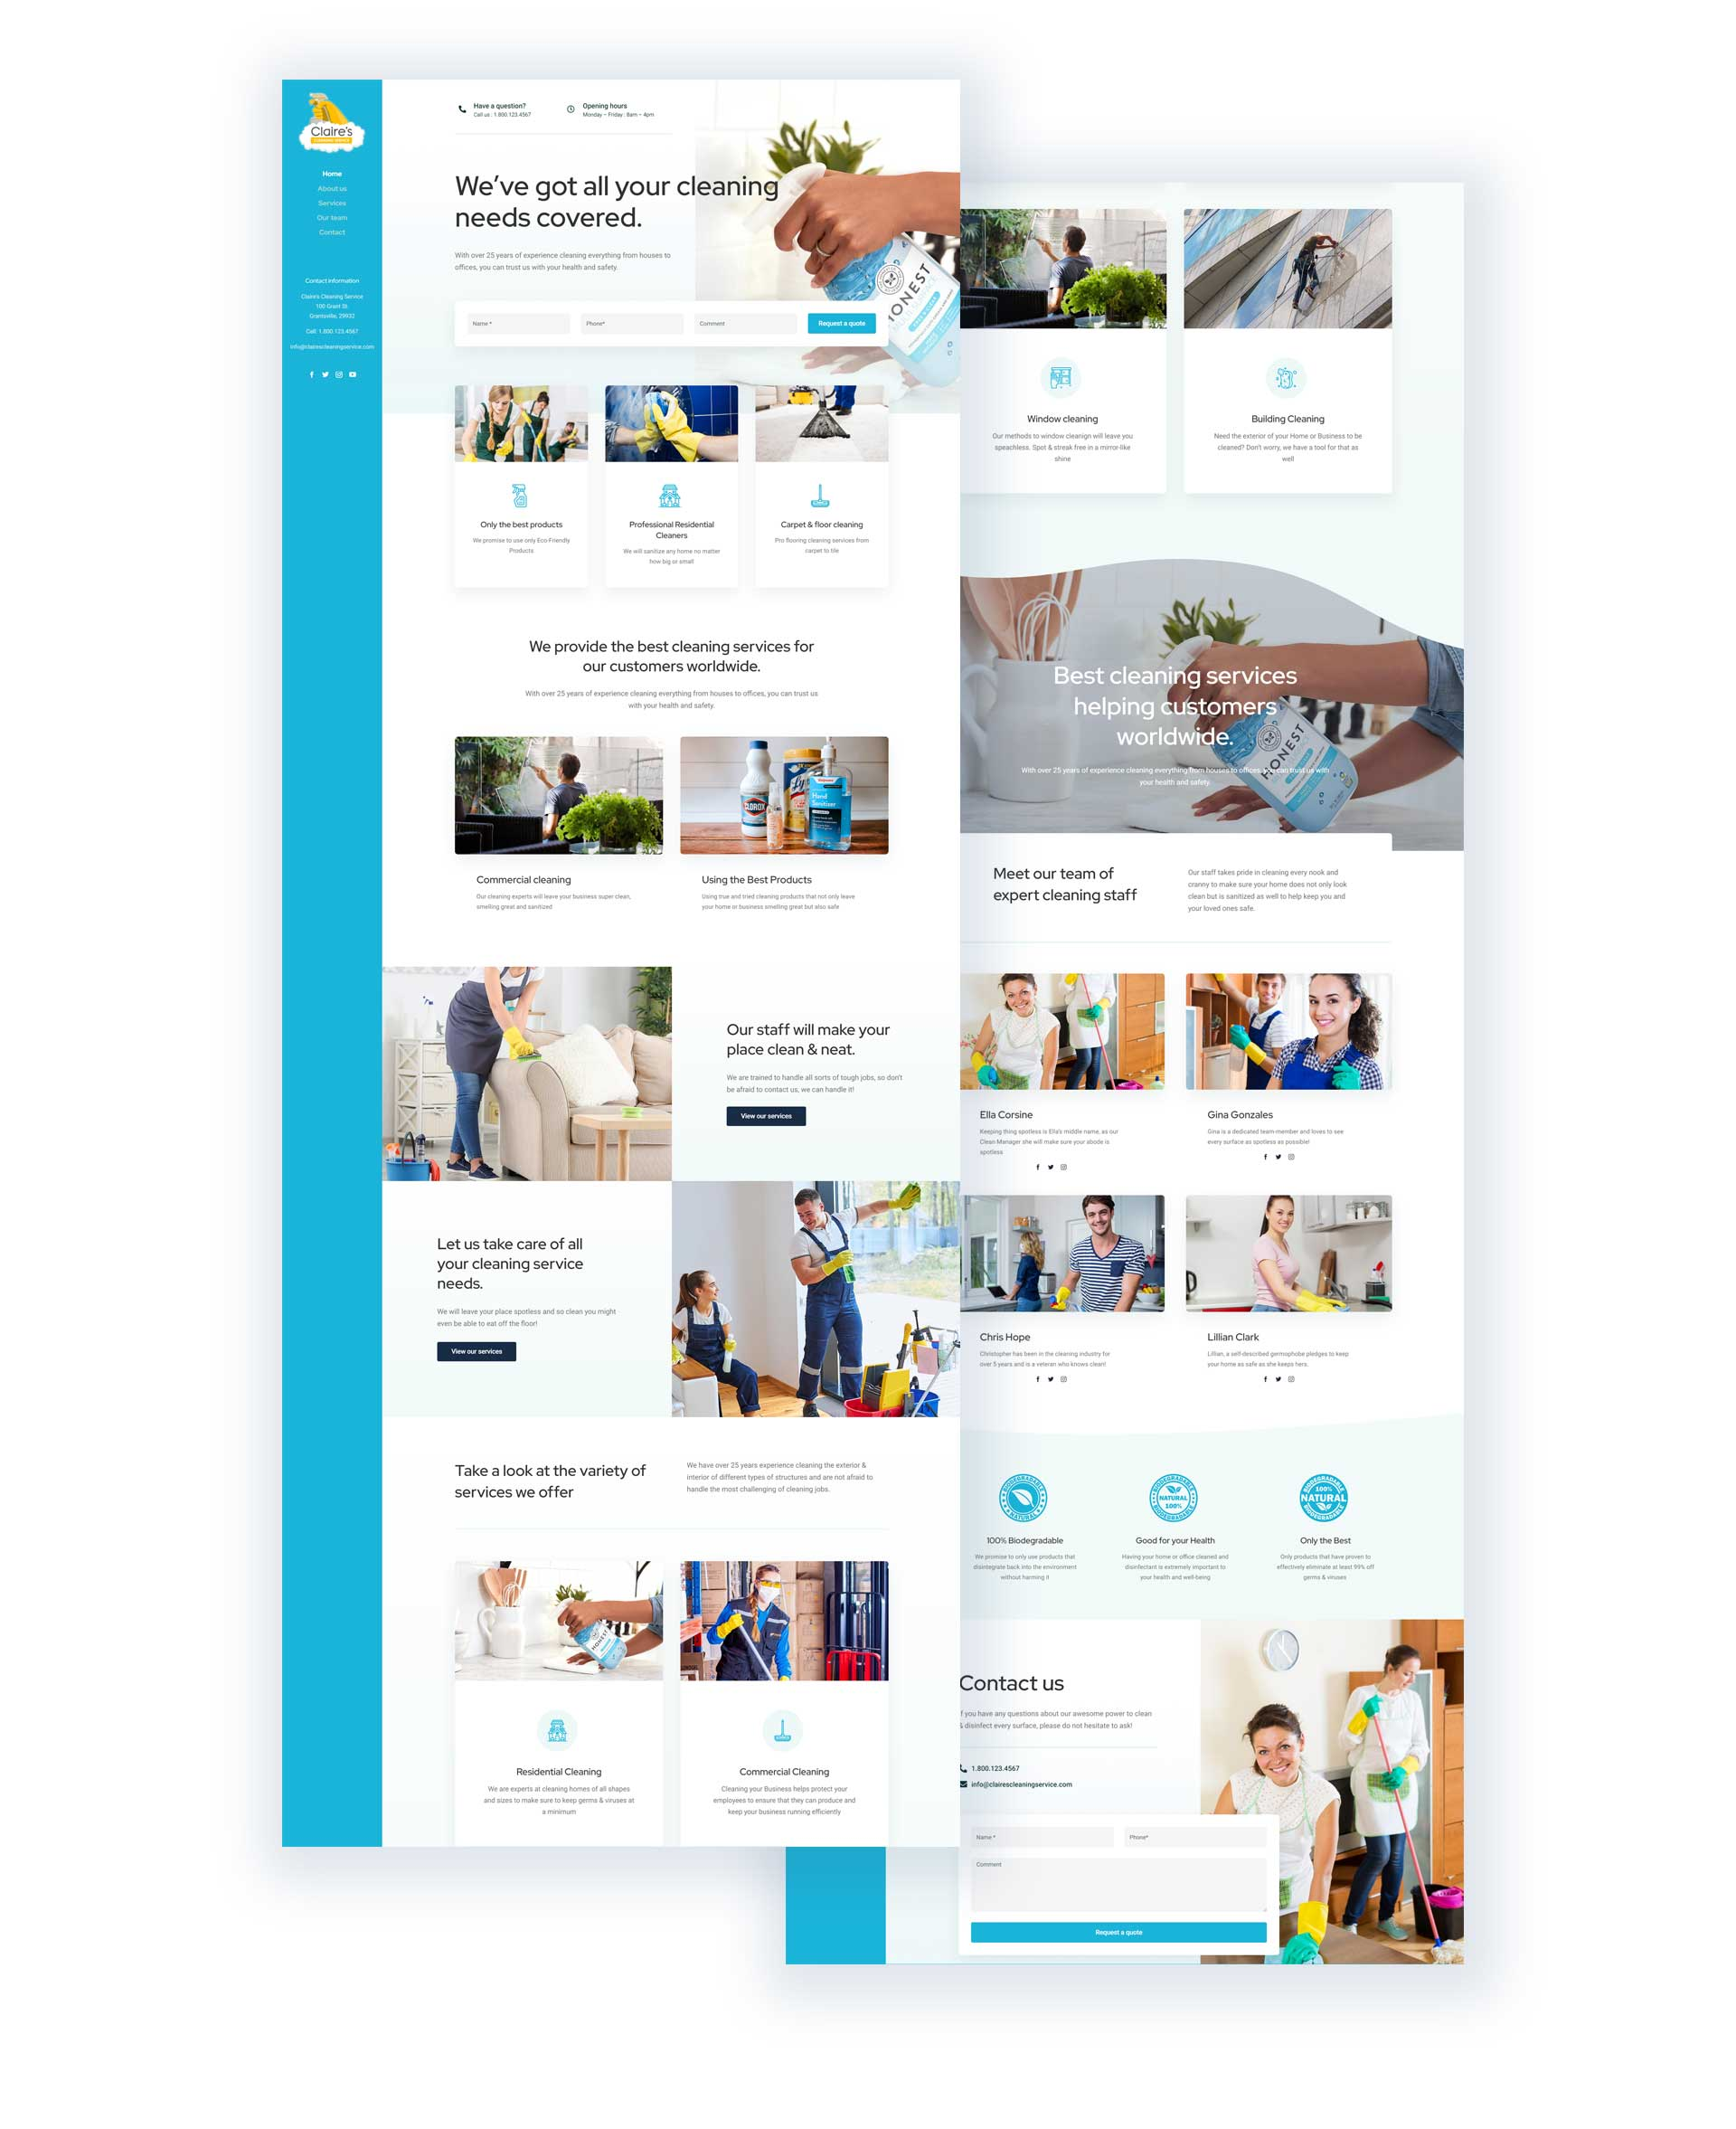 Claire's Cleaning Service Website Design